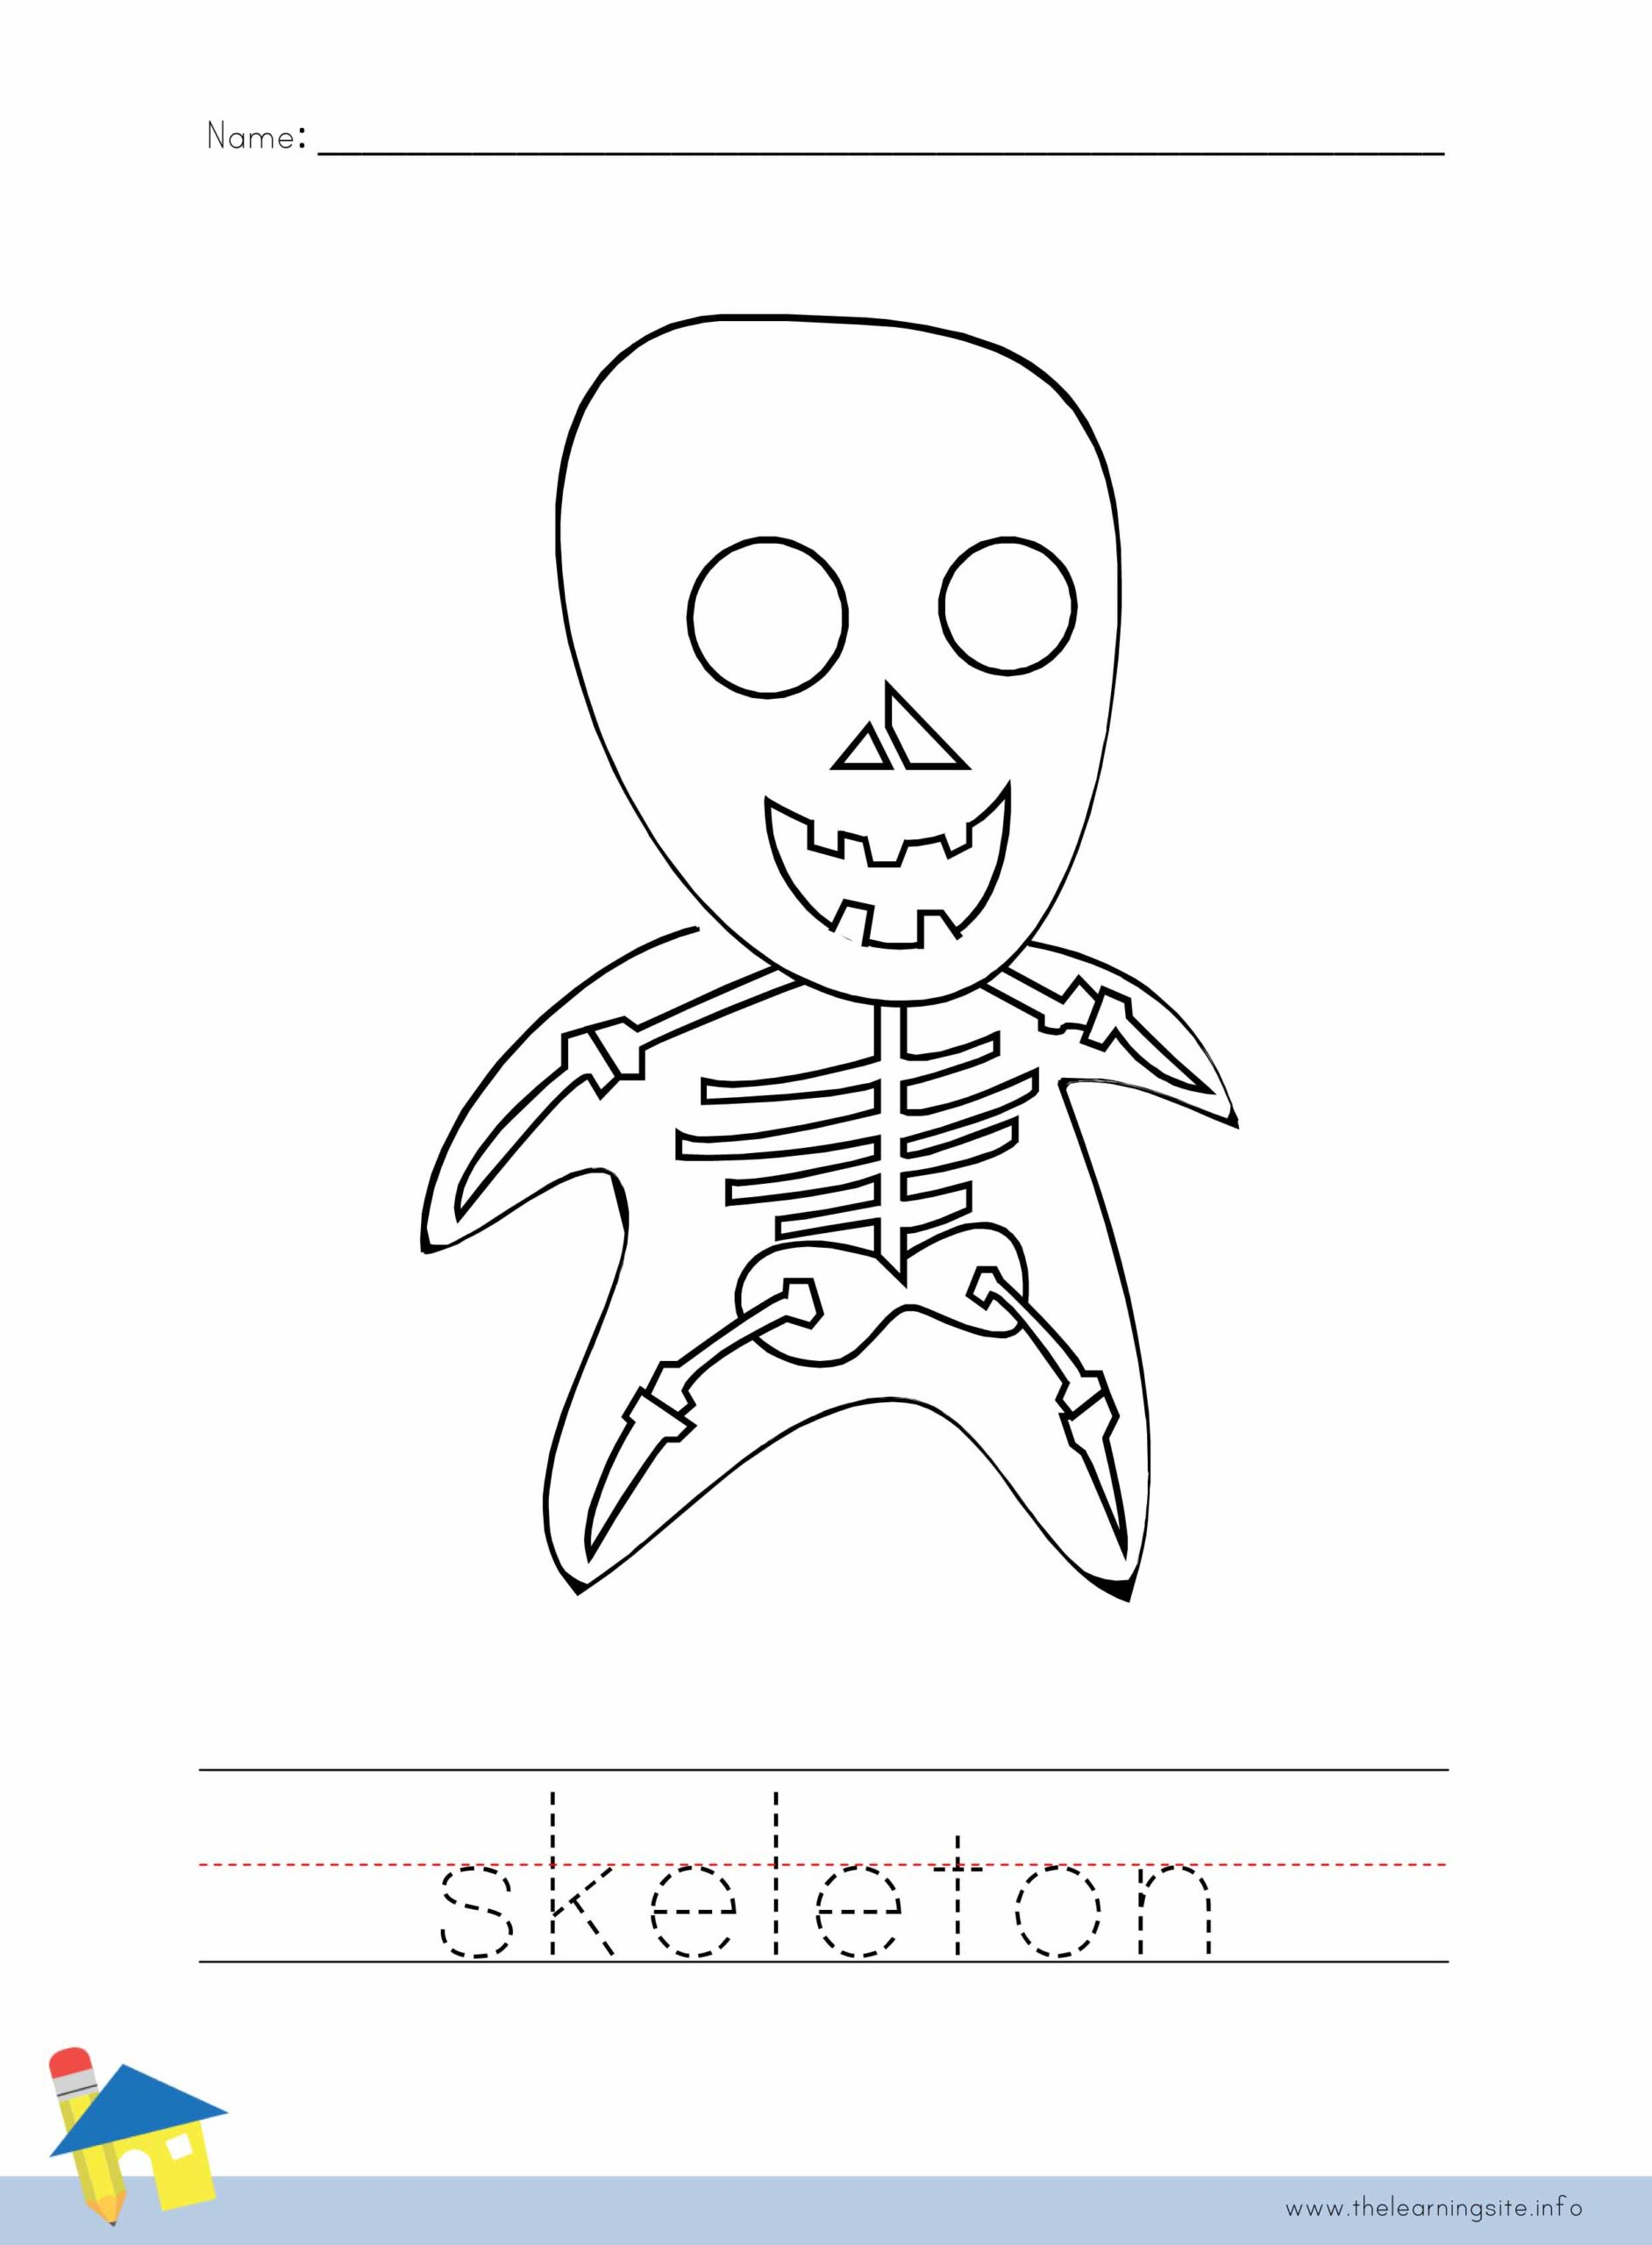 Skeleton Coloring Worksheet The Learning Site